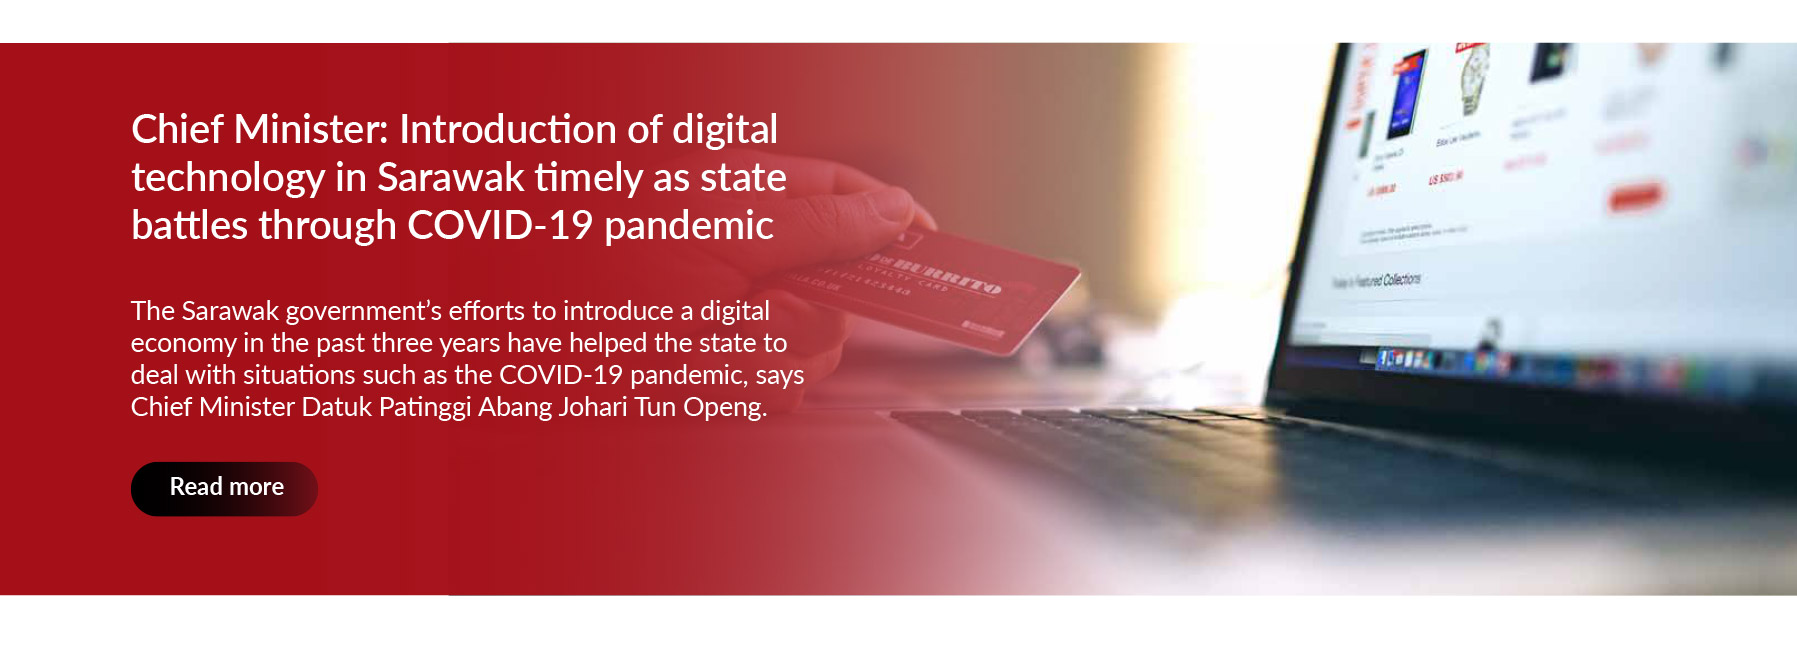 Introduction of digital technology in Sarawak timely as state battles through COVID-19 pandemic